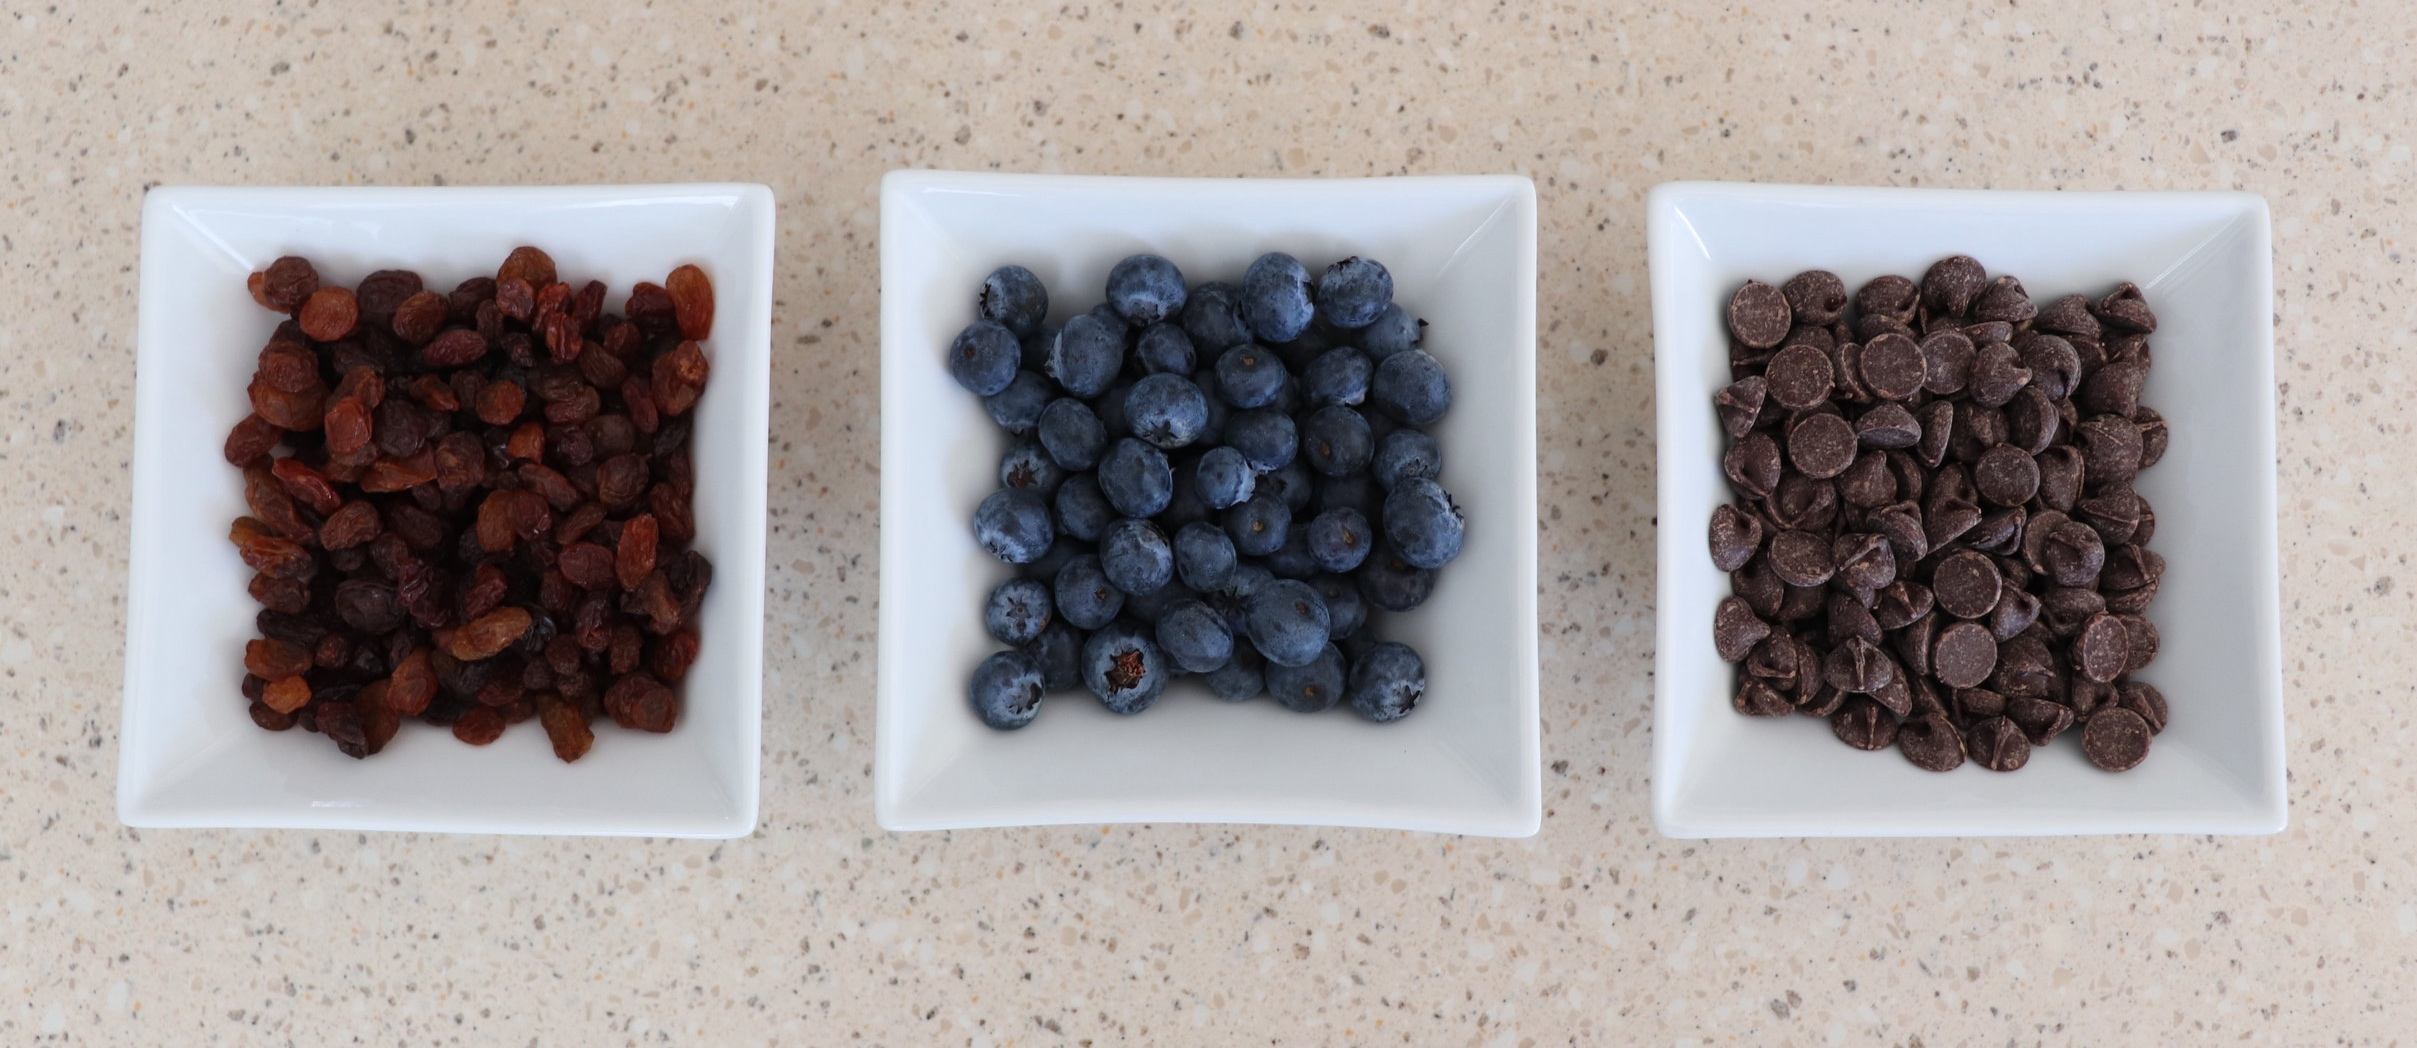 In addition to the golden raisins we tried blueberries and chocolate chips as well.